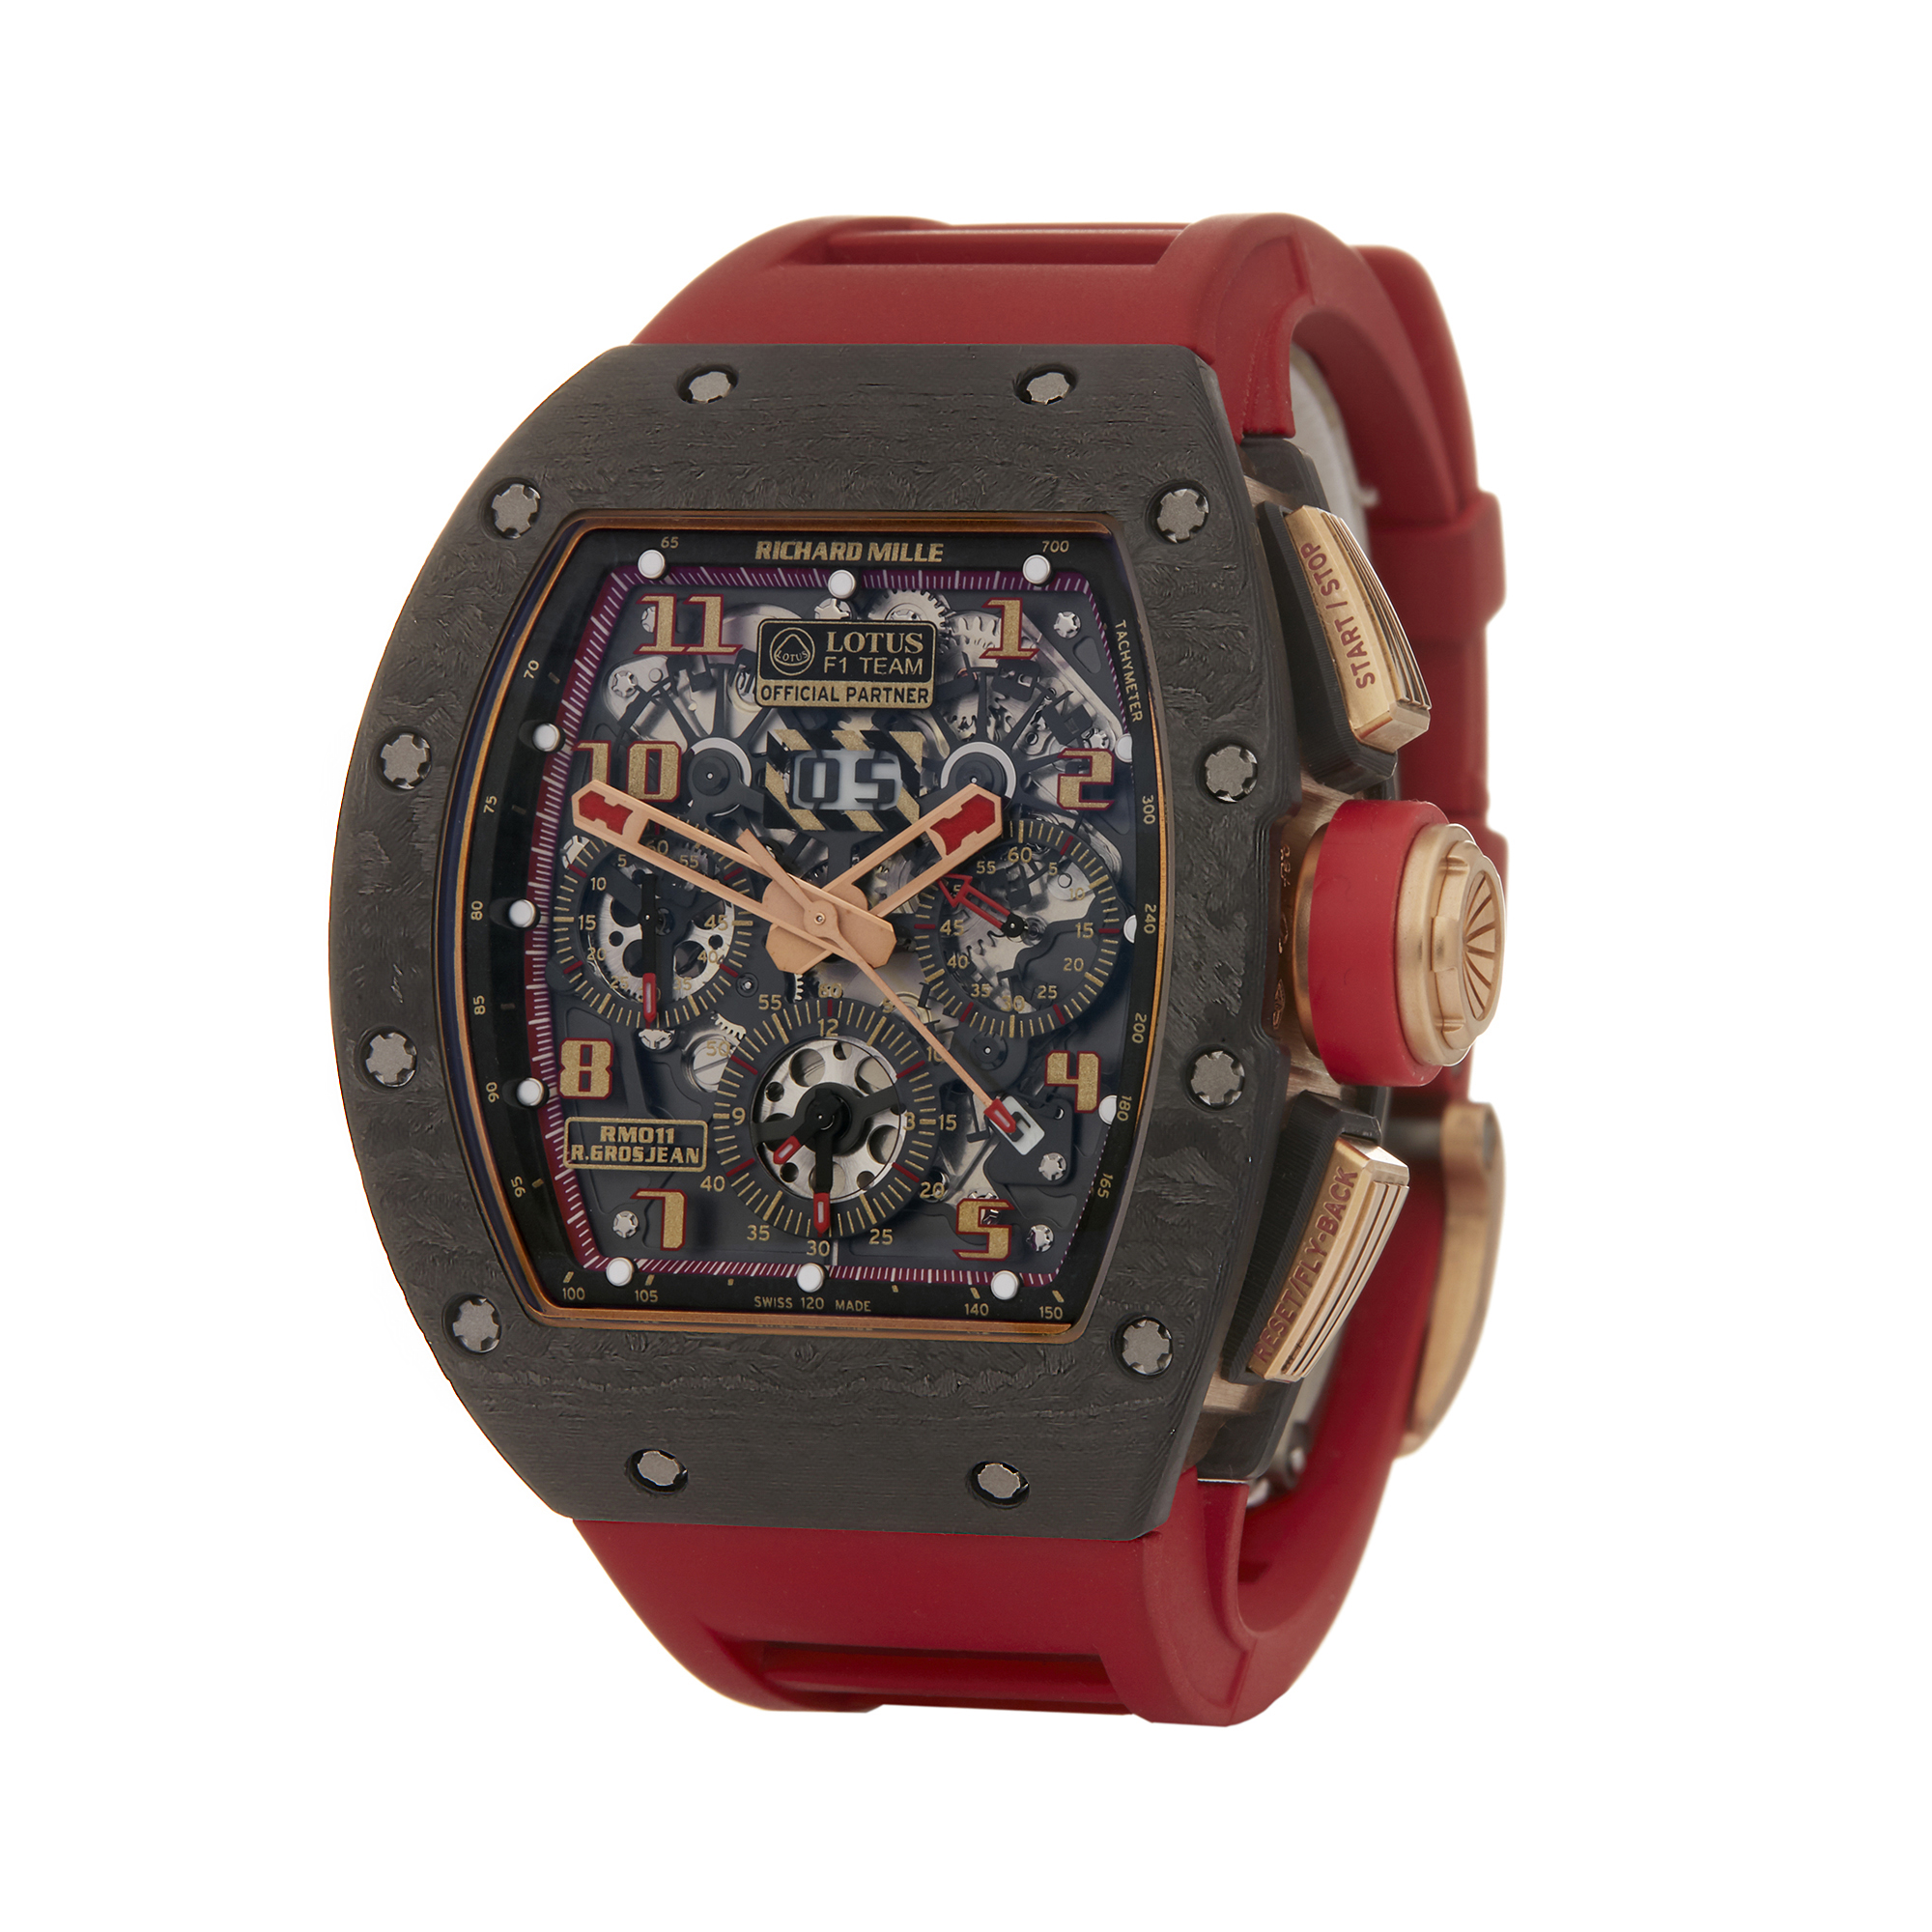 Lot 6 - Richard Mille RM011 Lotus F1 18K Rose Gold & Carbon - Rm011